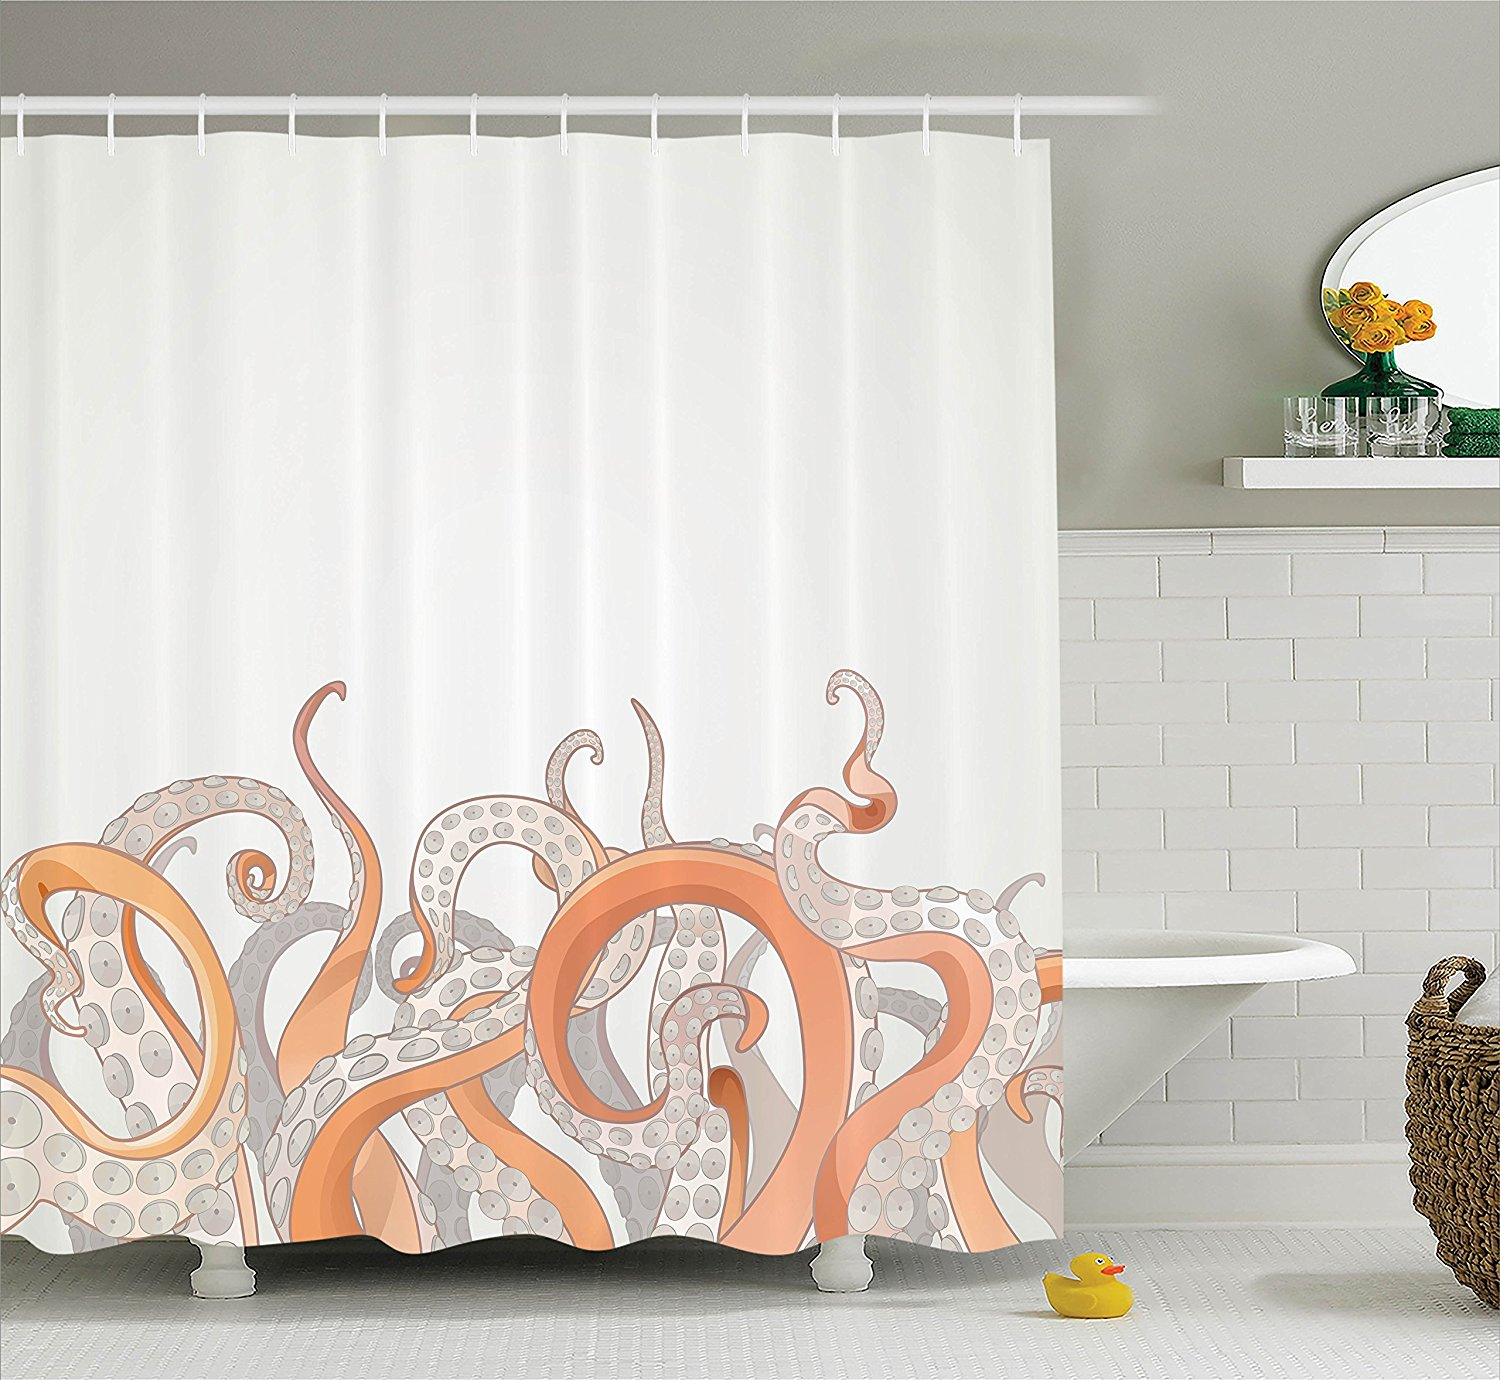 Pirate Shower Curtain Ideas For The Bathroom